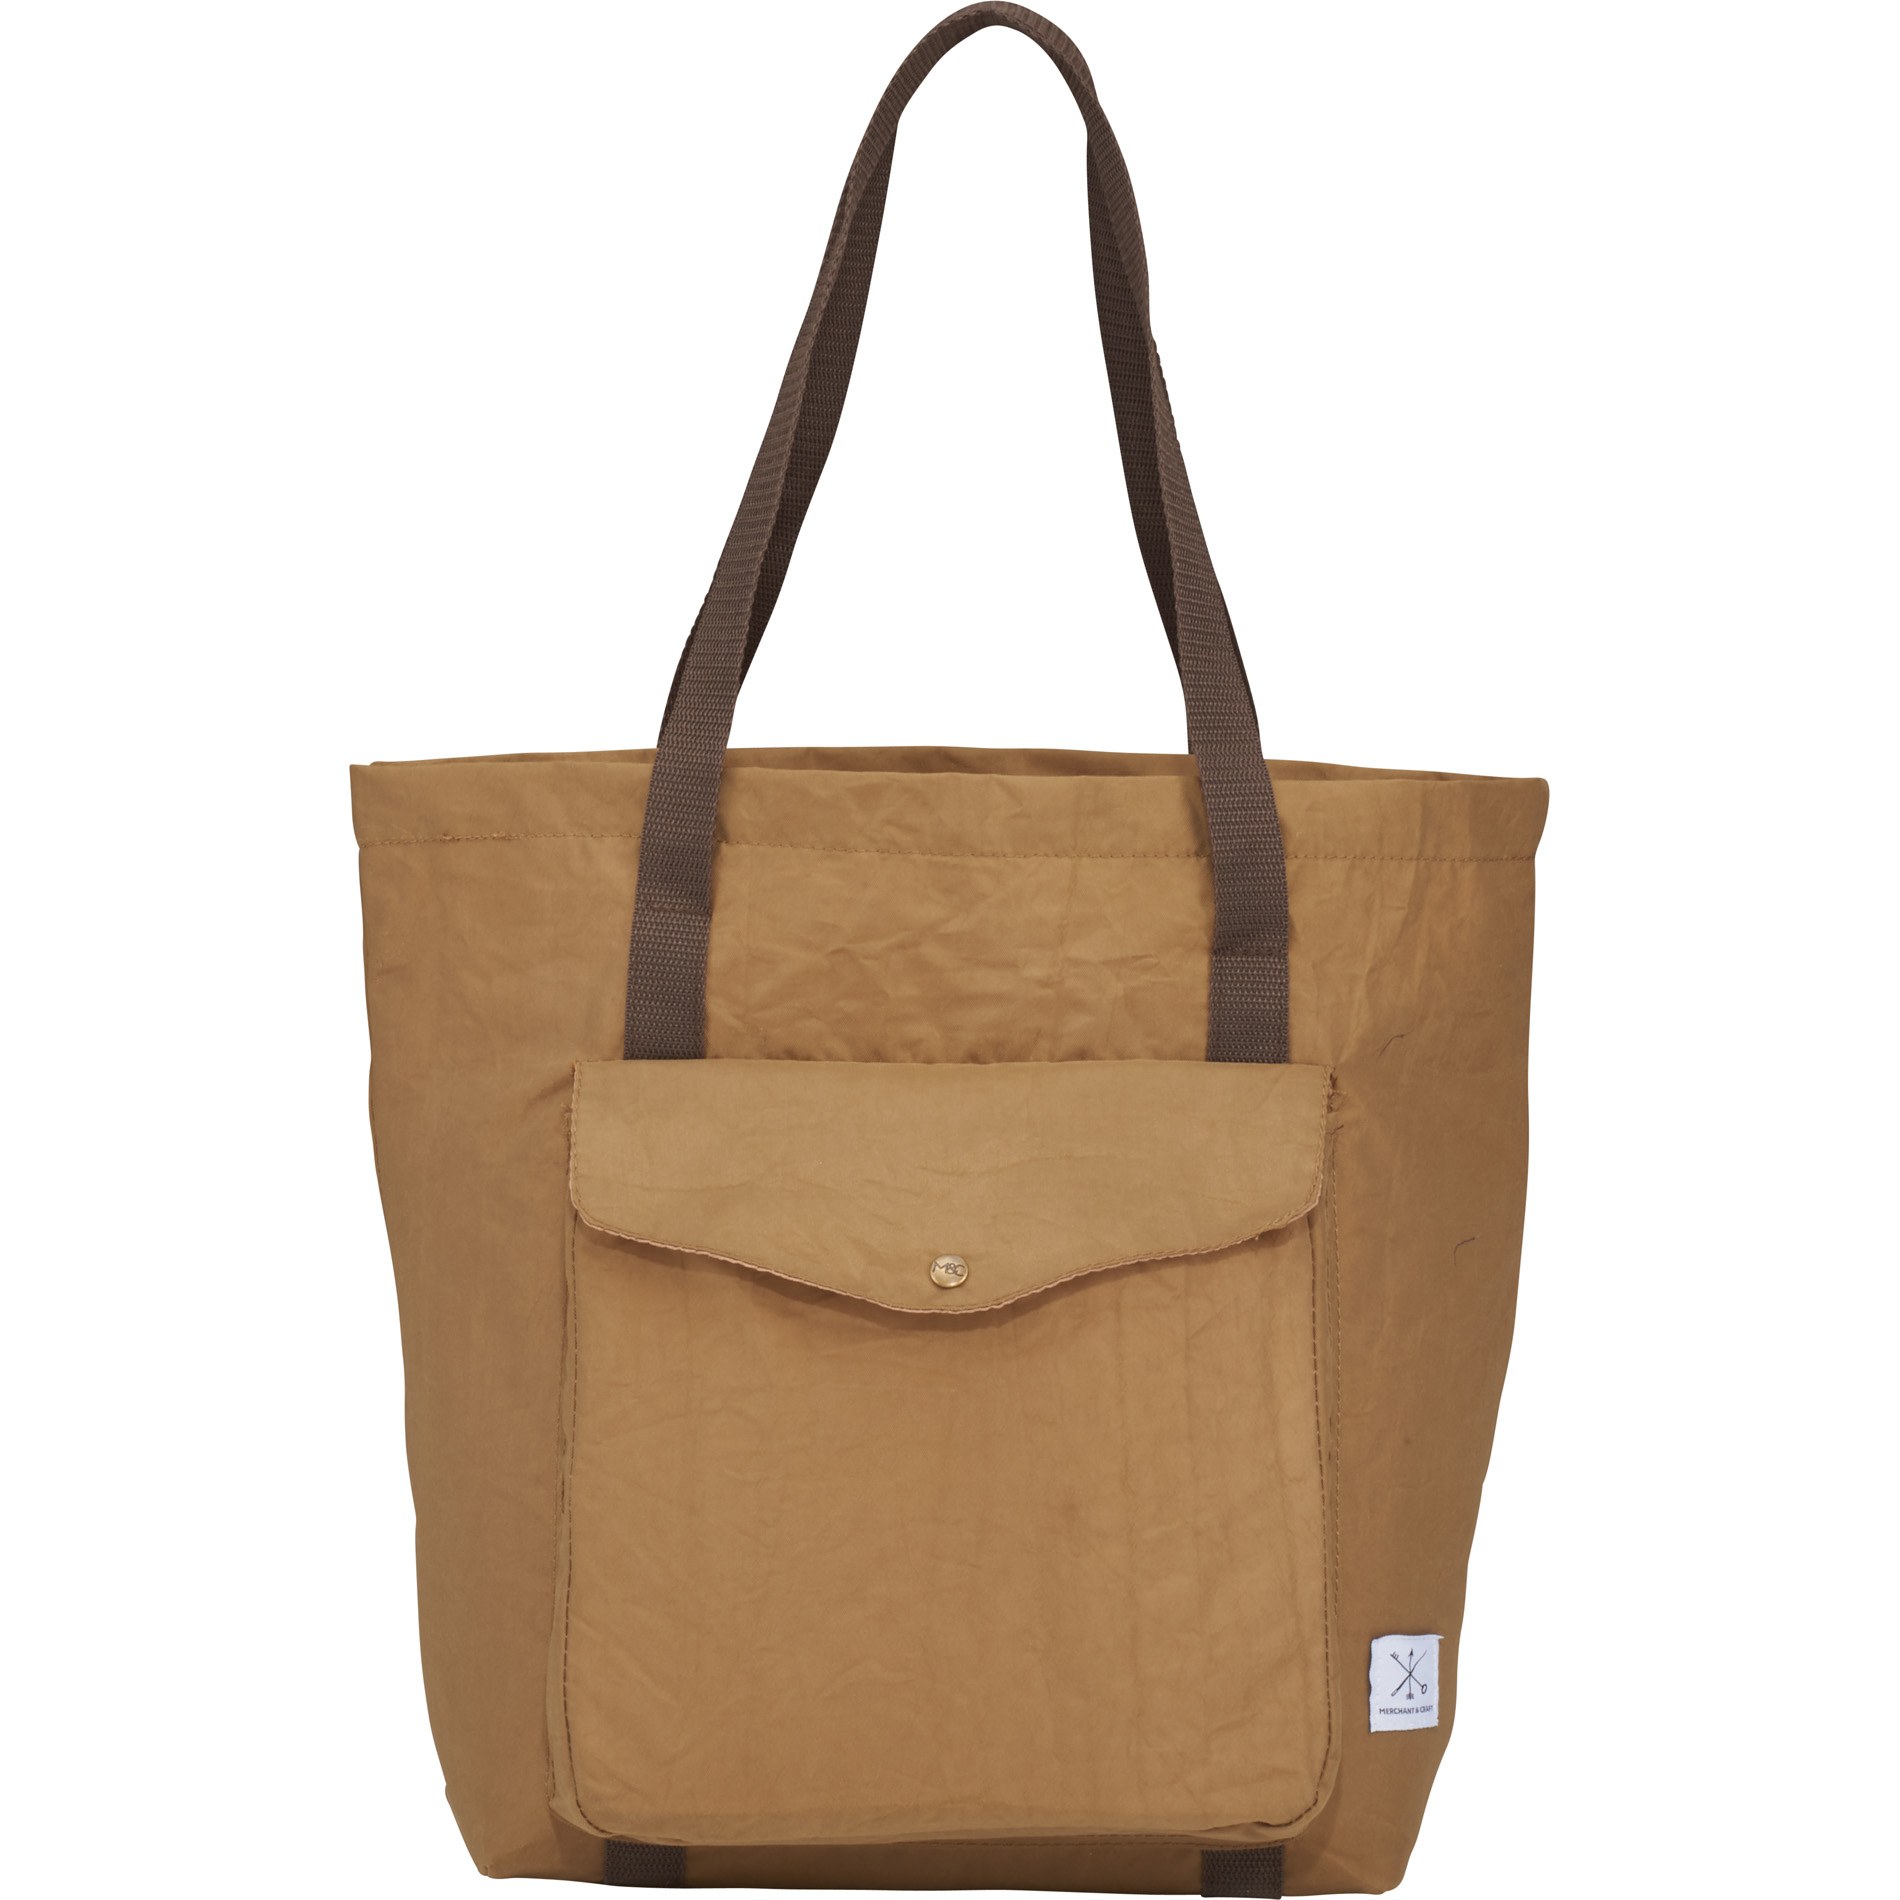 Merchant & Craft 3750-31 - Sawyer Tote